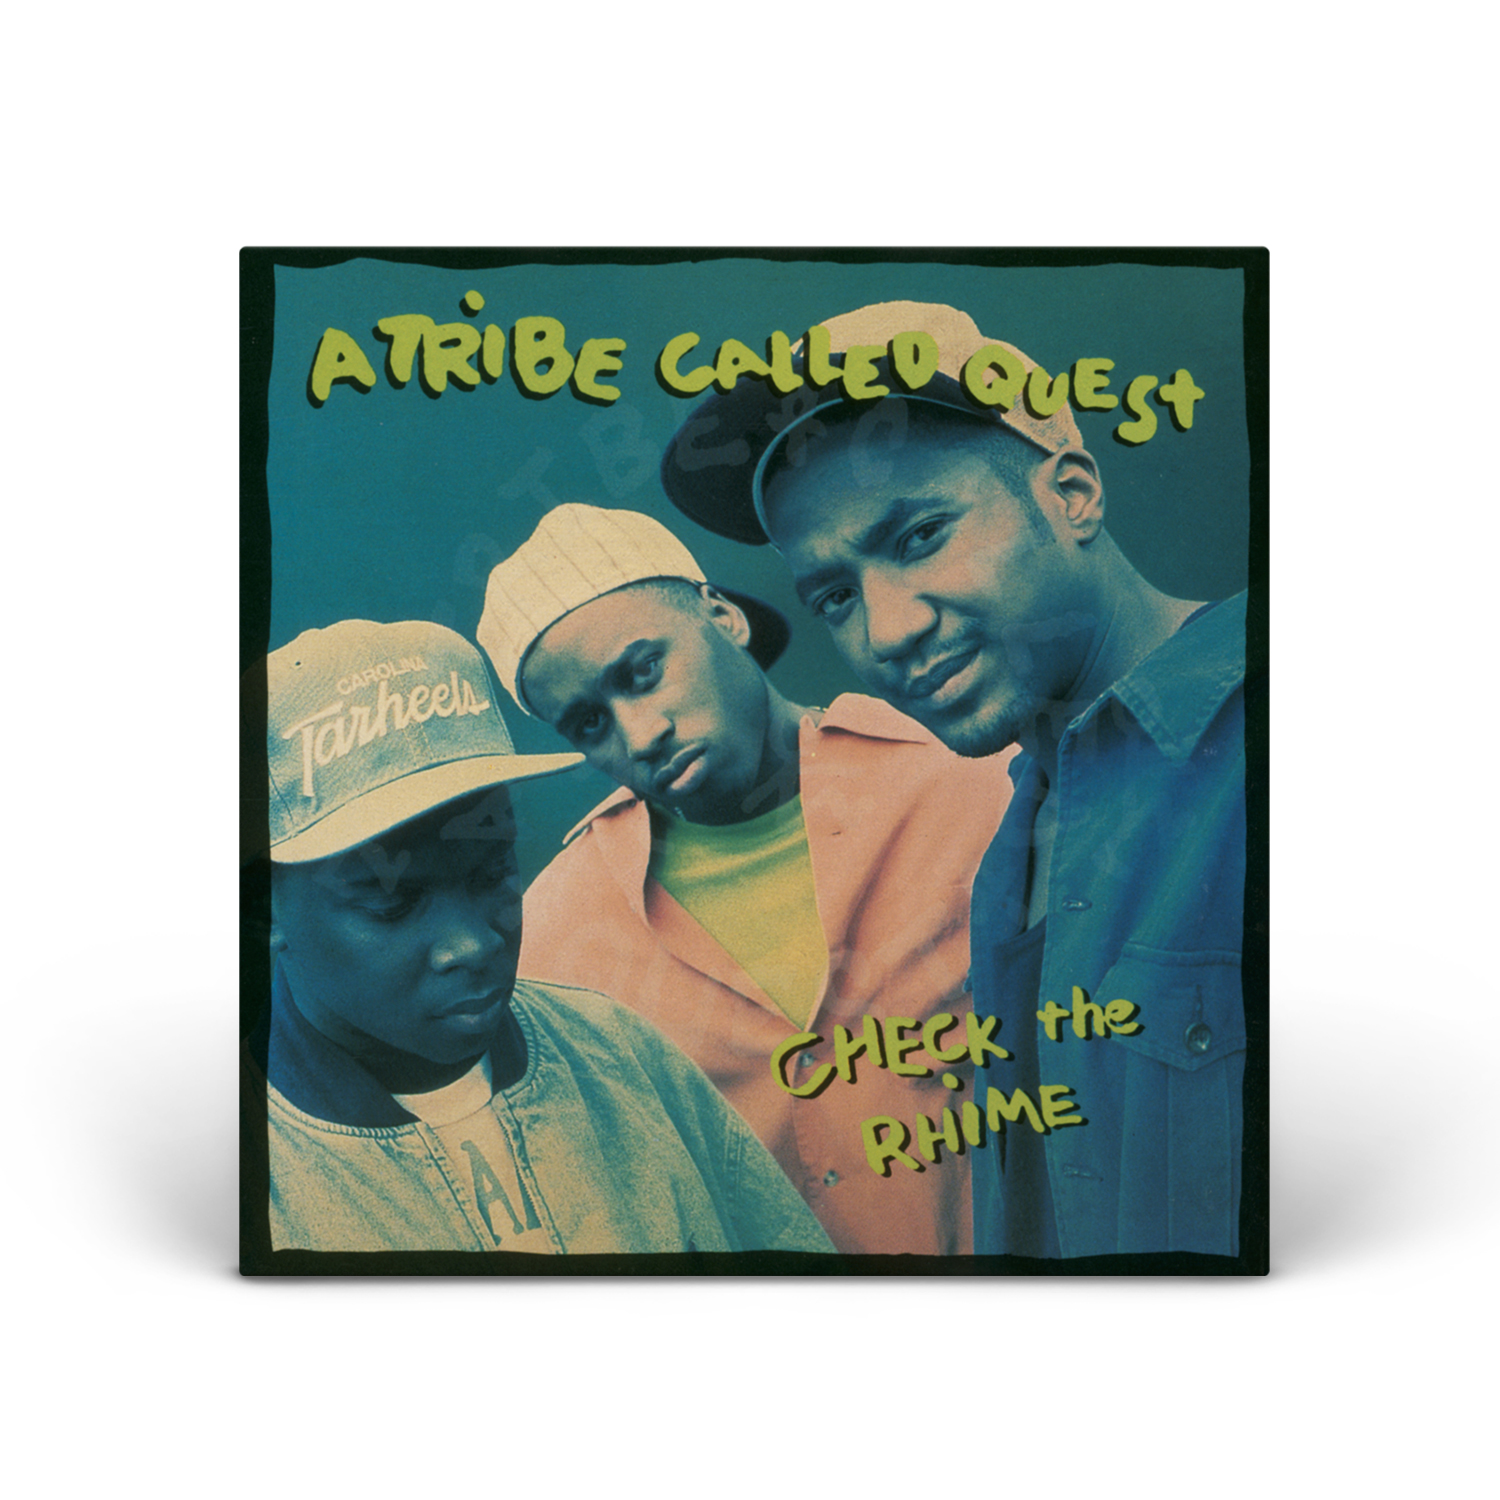 A Tribe Called Quest - Check The Rhime (Remixes) Digital Audio Bundle